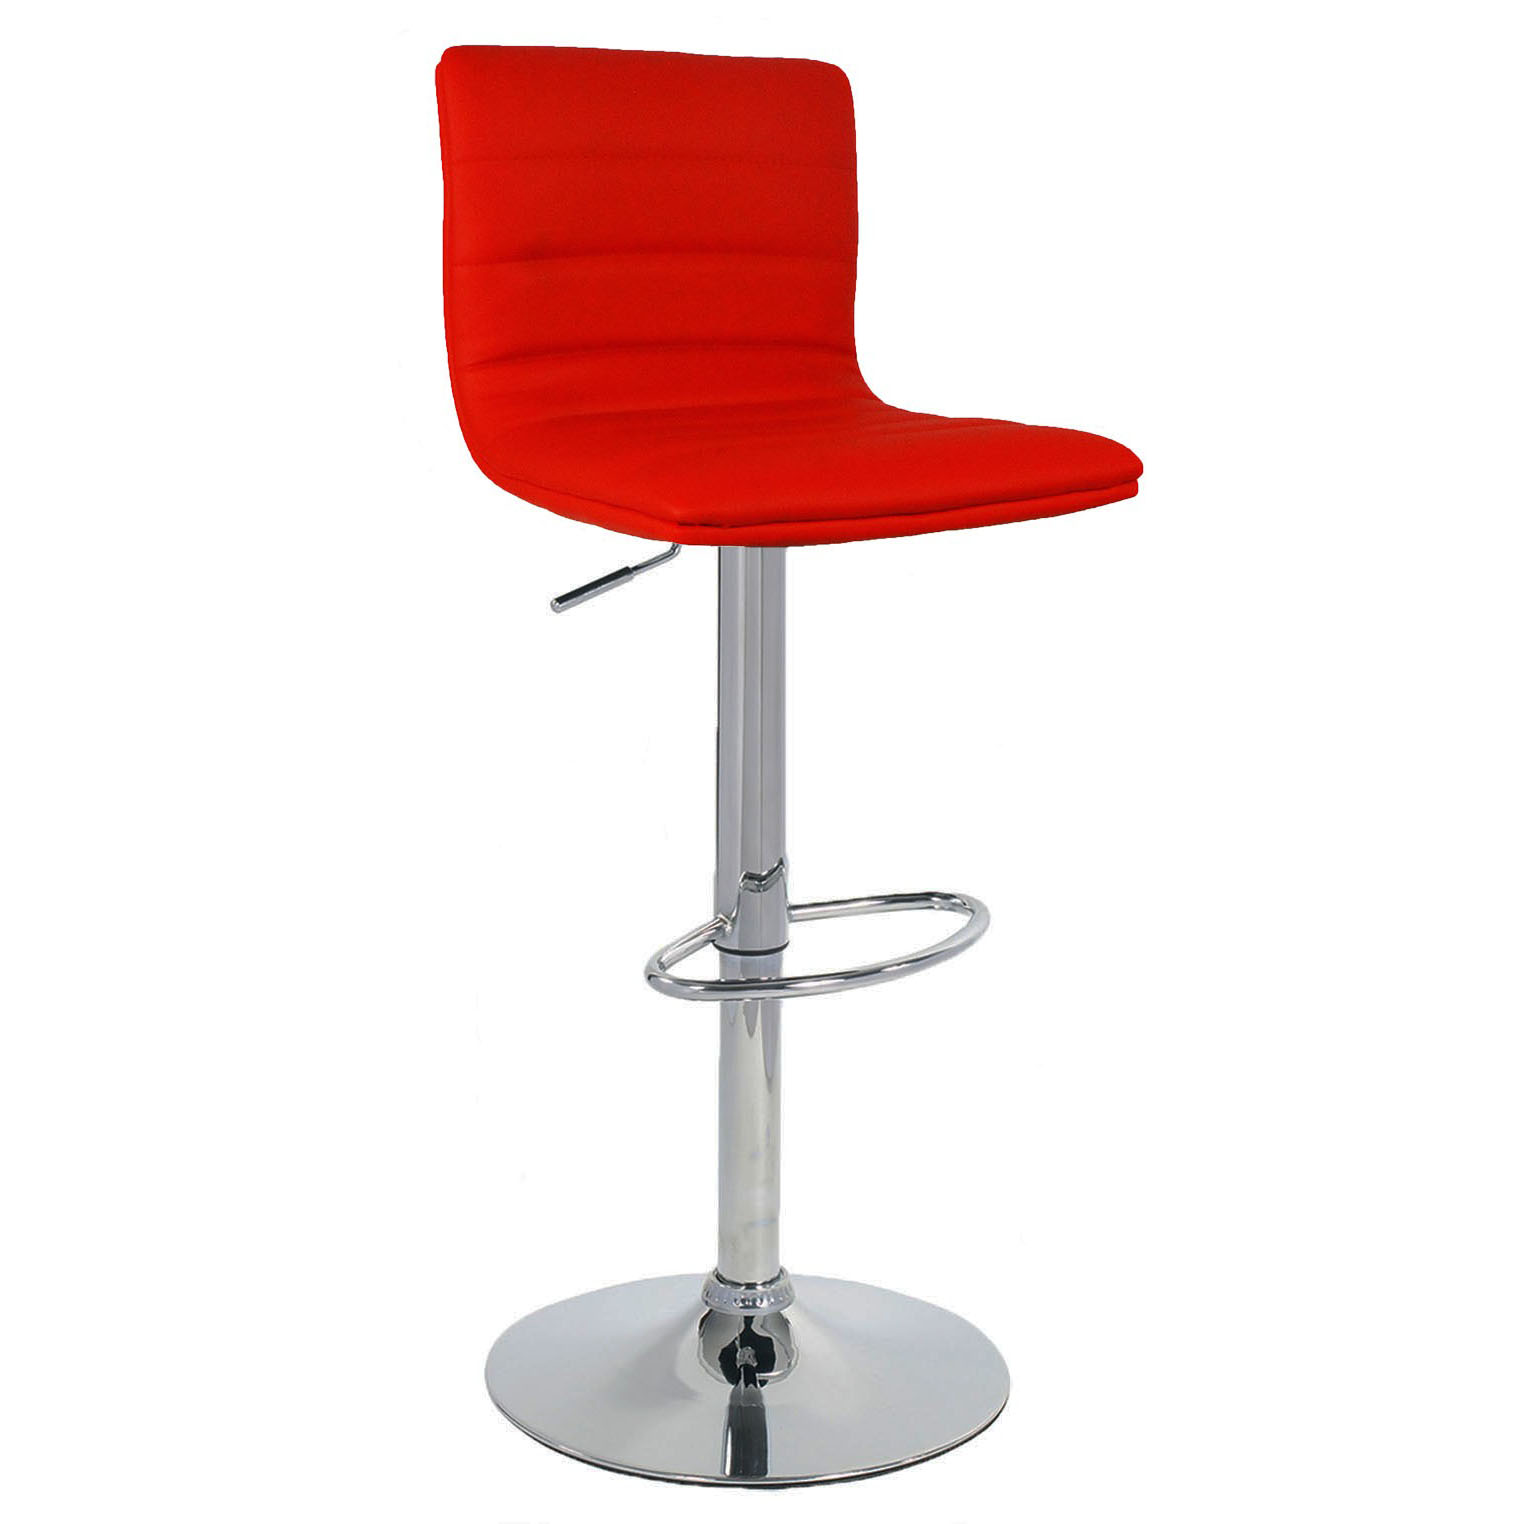 Aldo Bar Stool  Red Size X 390mm X 390mm. Nordstrom Furniture Living Room. Narrow Living Room With Fireplace Layout. Living Room Lighting Design Pictures. Interior Design Living Room Photo Gallery. Upholstered Chairs For Living Room. Room Themes For Living Room. Ikea Living Room Images. Ultimate Guitar Living Room Song